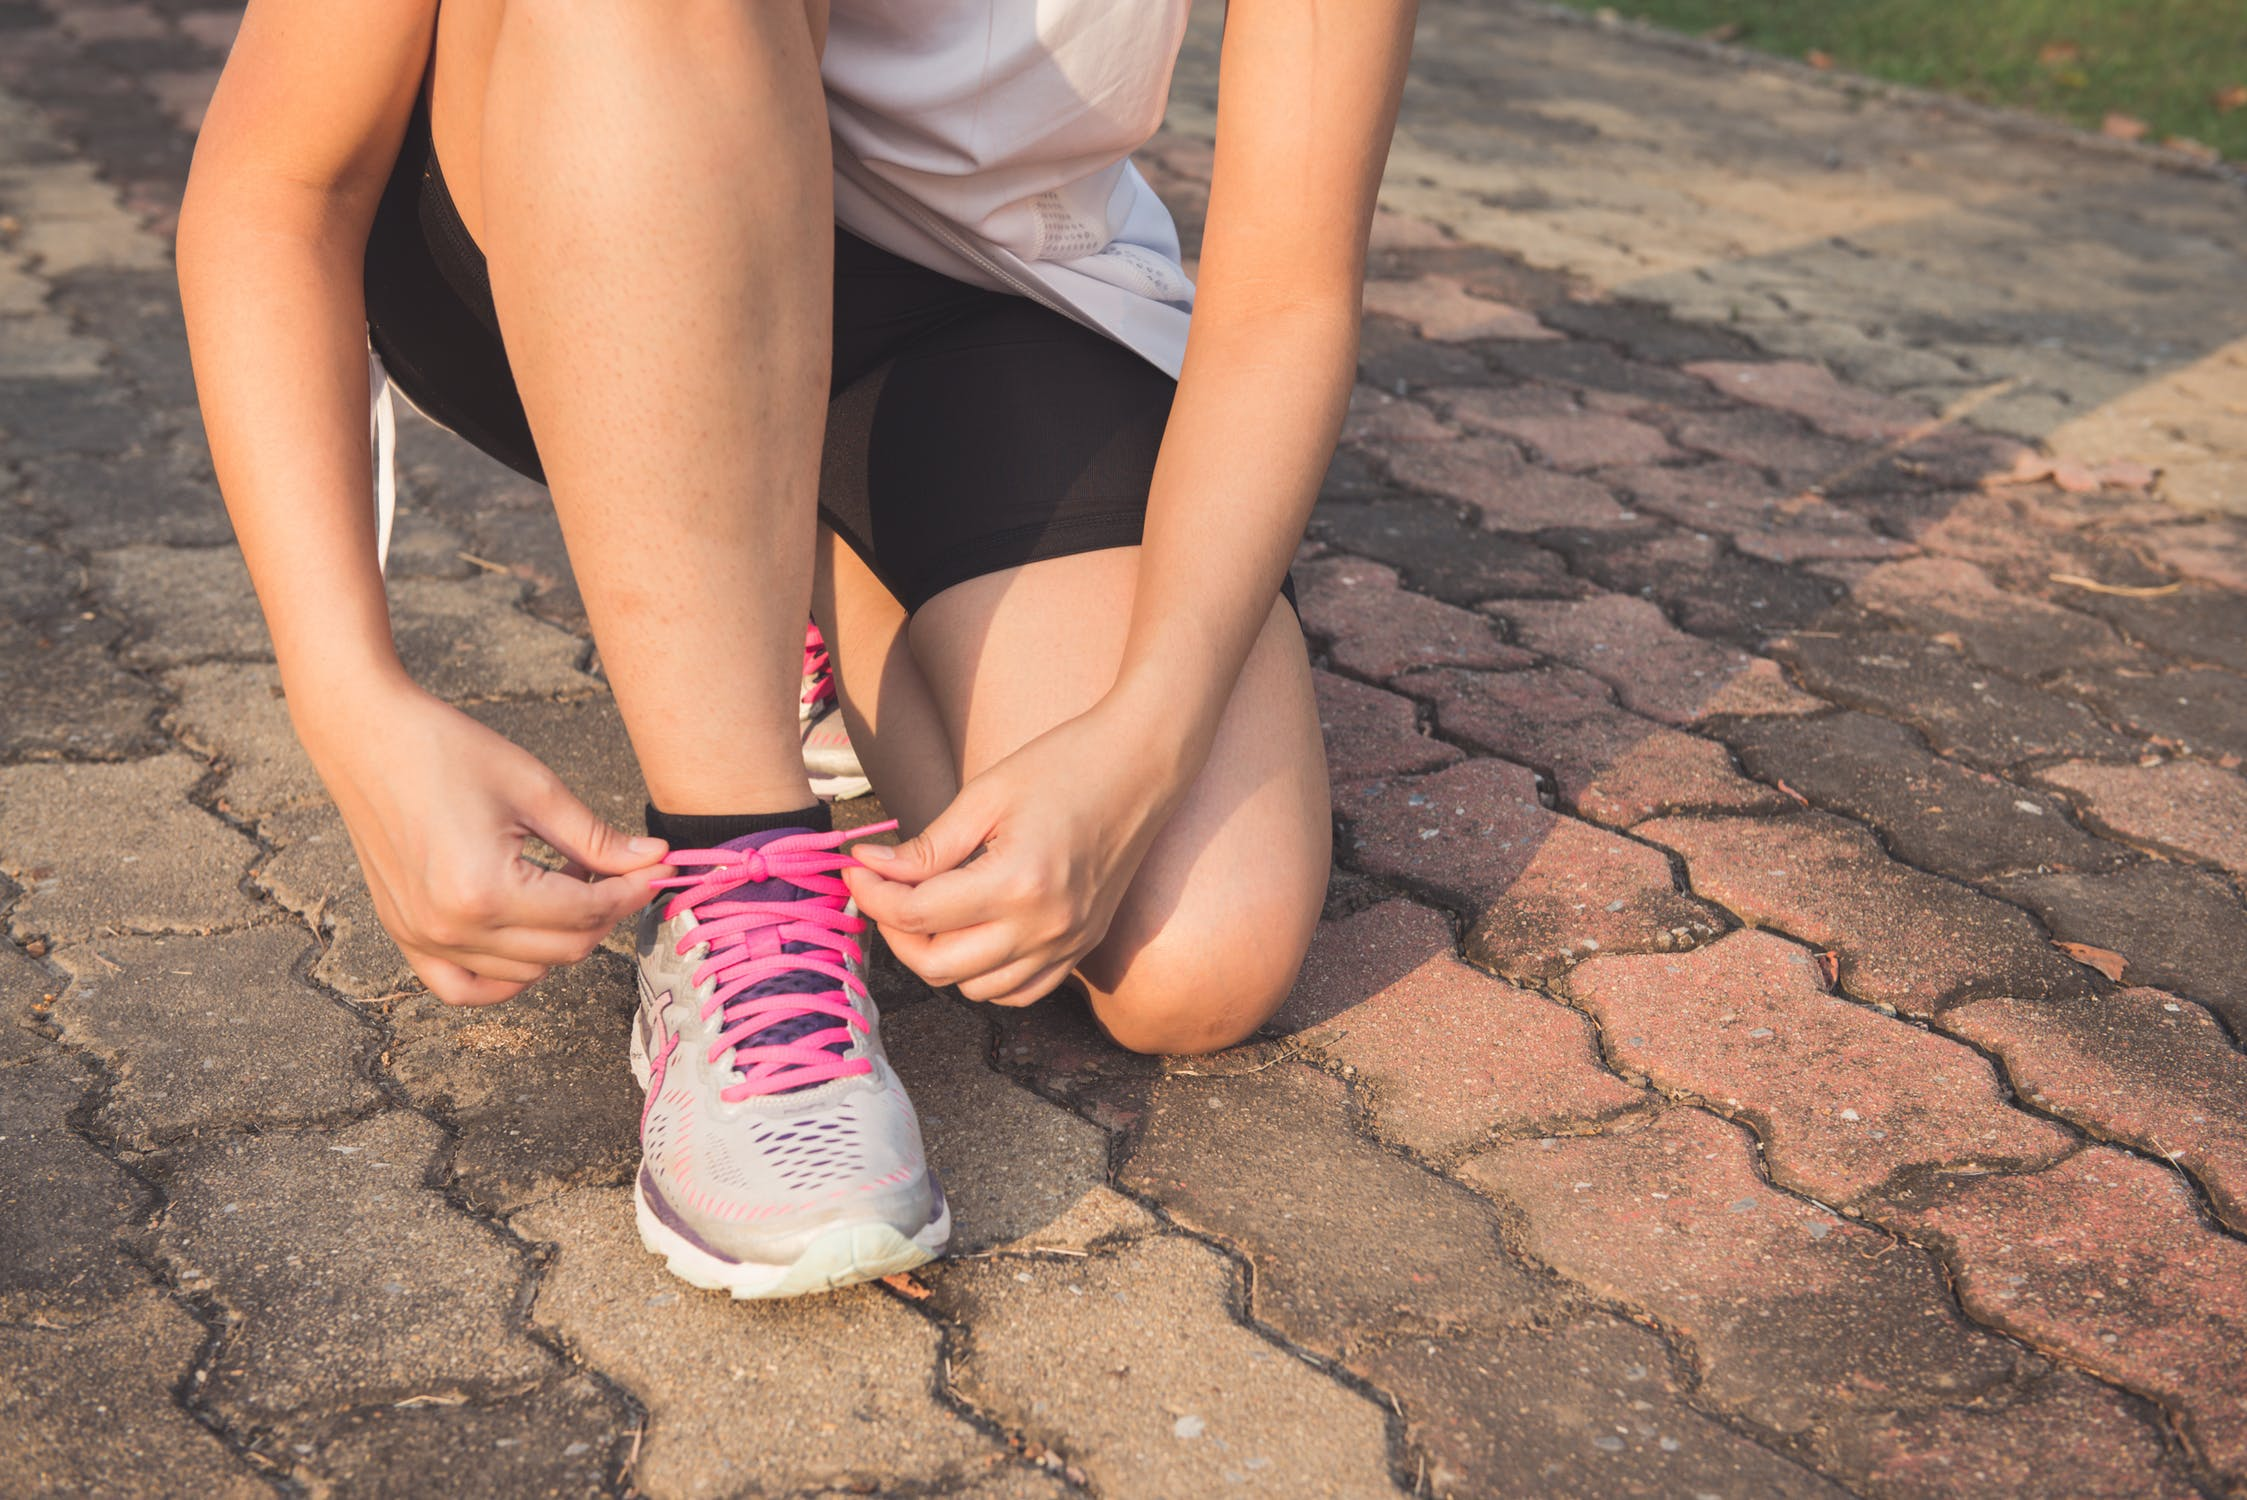 exercise and cholesterol execise and cholesterol exercise-and-cholesterol exercise